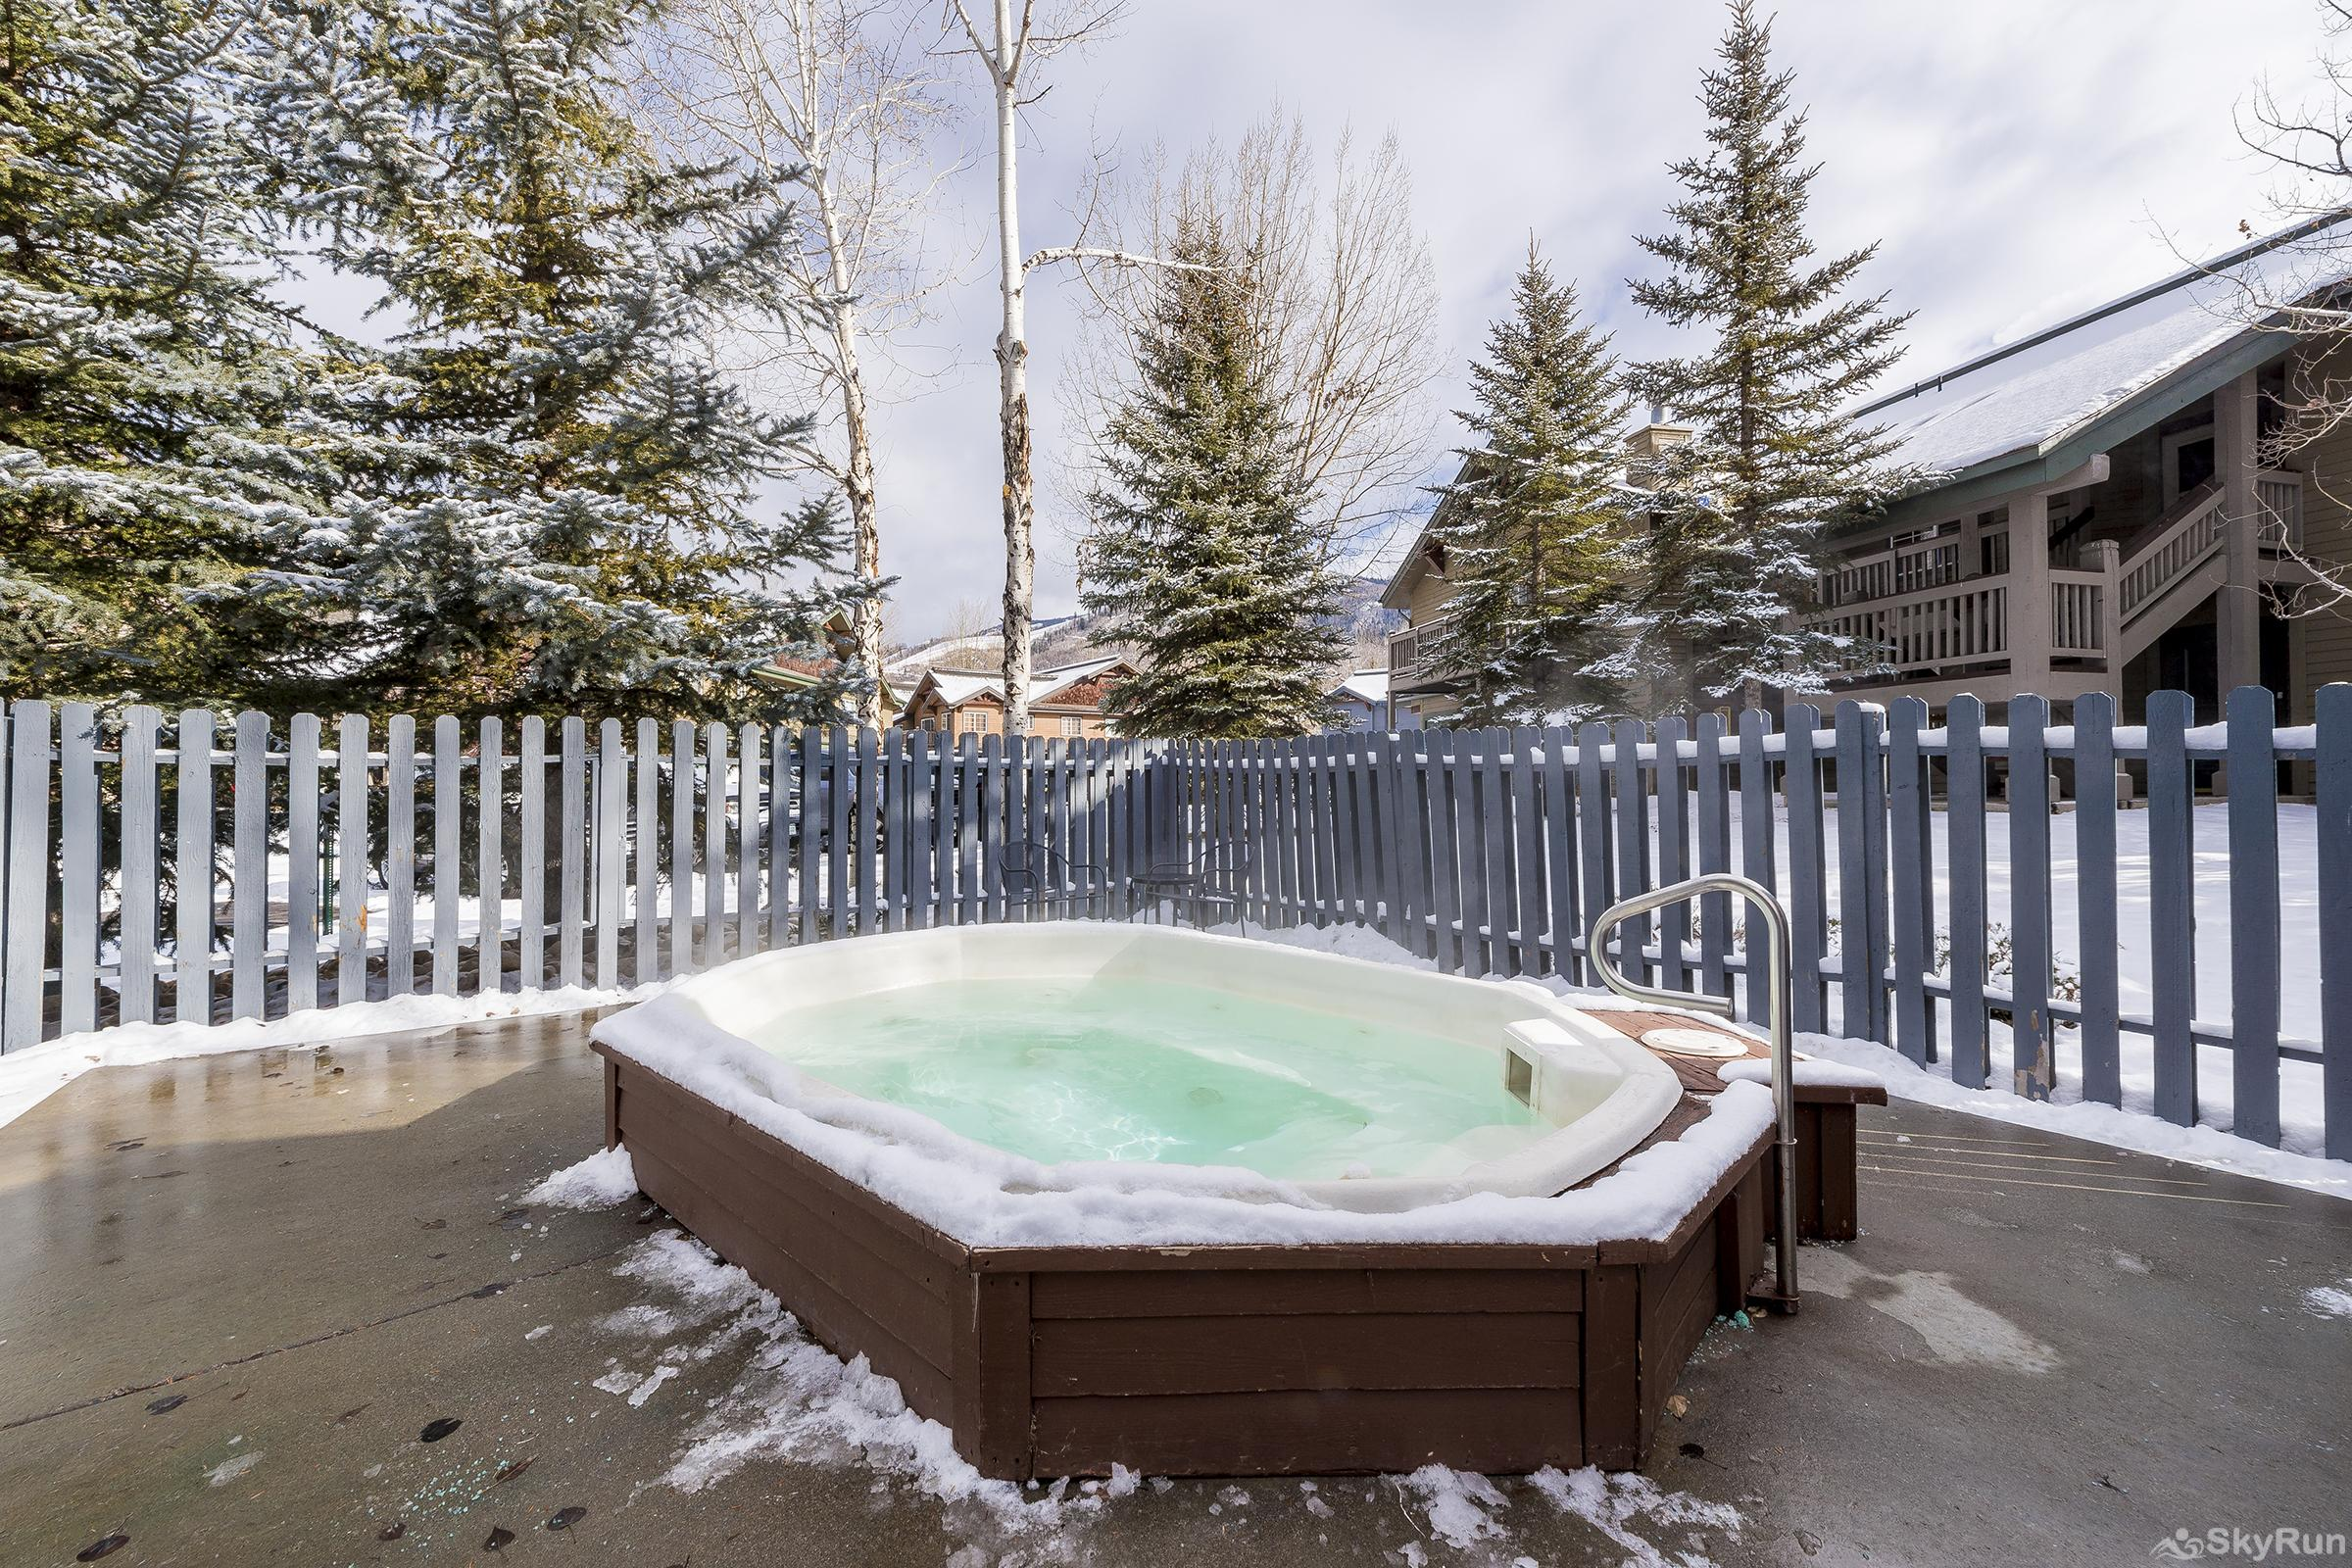 Villas 1450 Shared Hot Tub